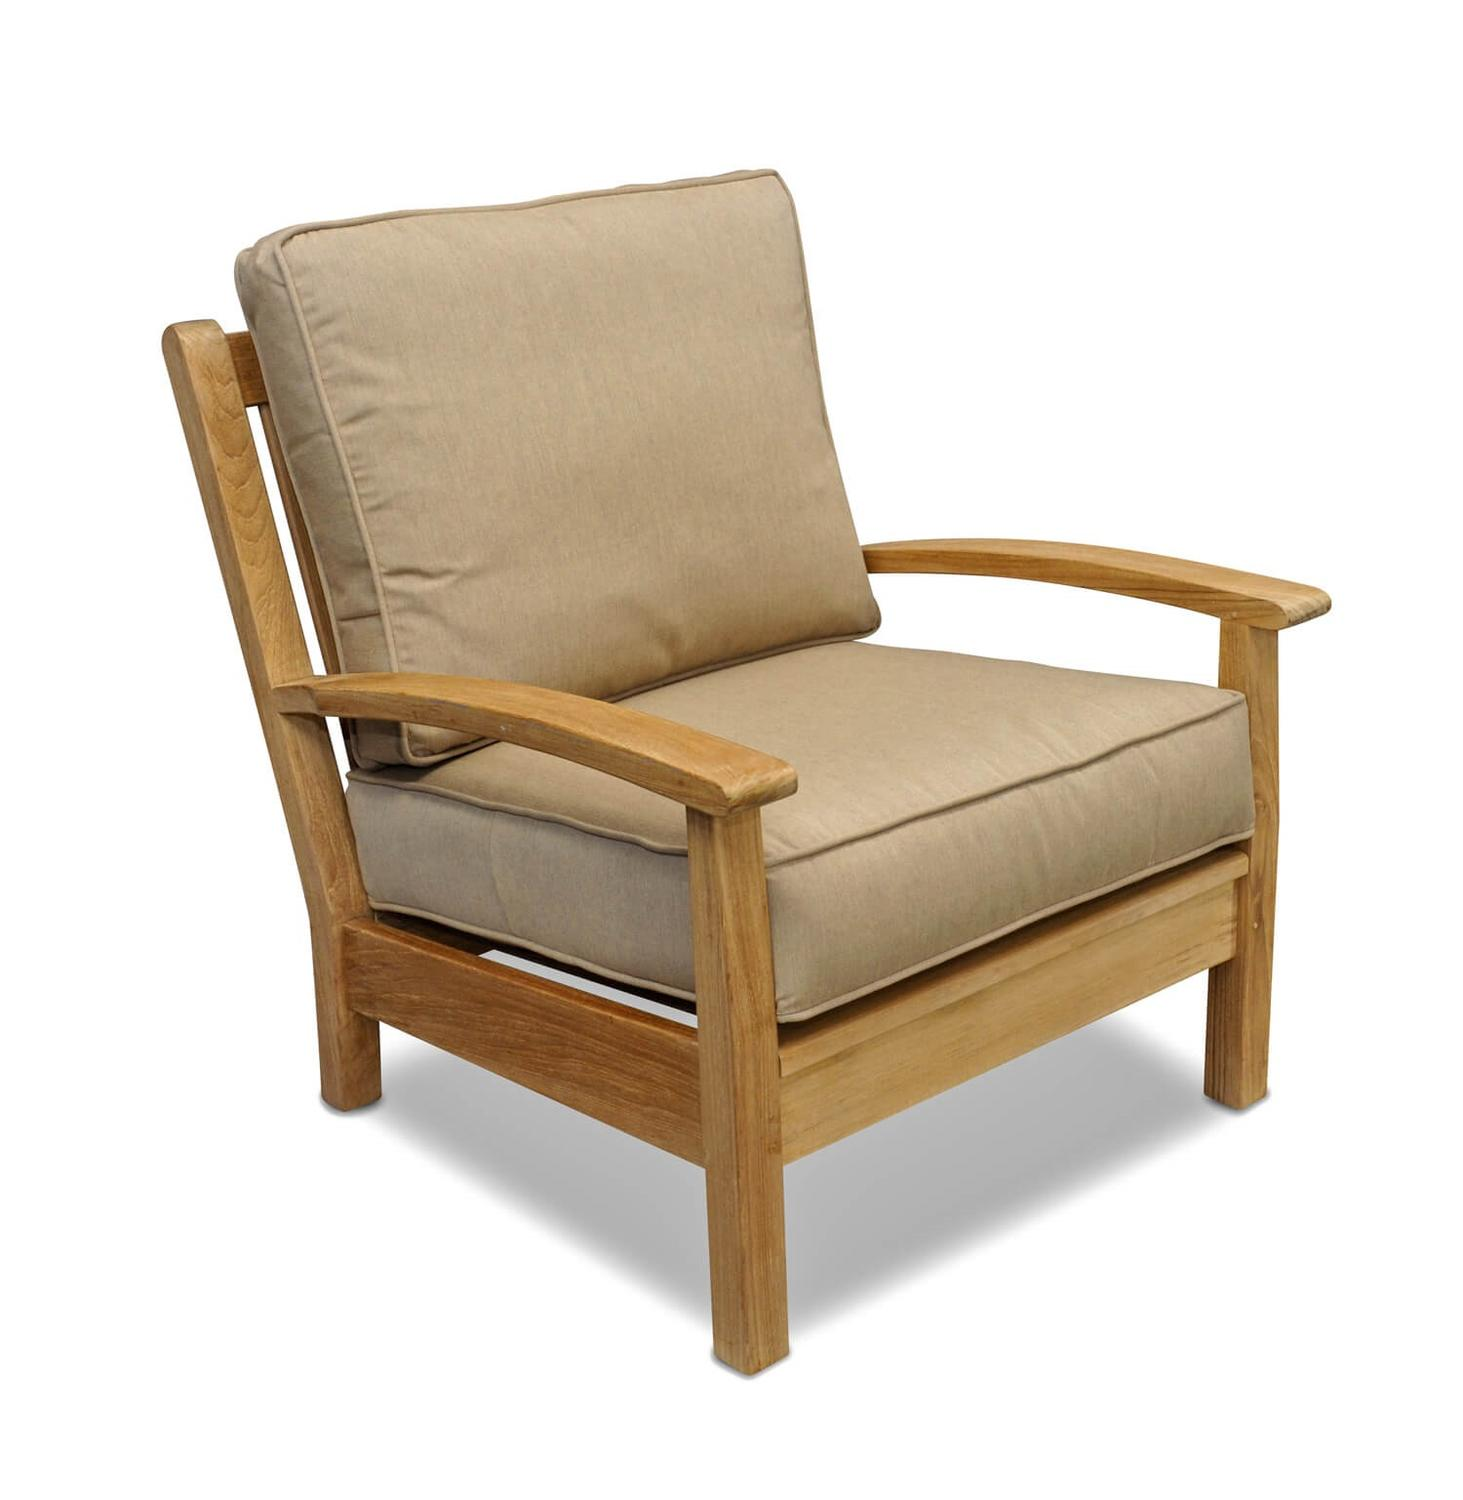 "34"" Natural Teak Deep Seating Outdoor Patio Lounge Chair with Beige Cushions"